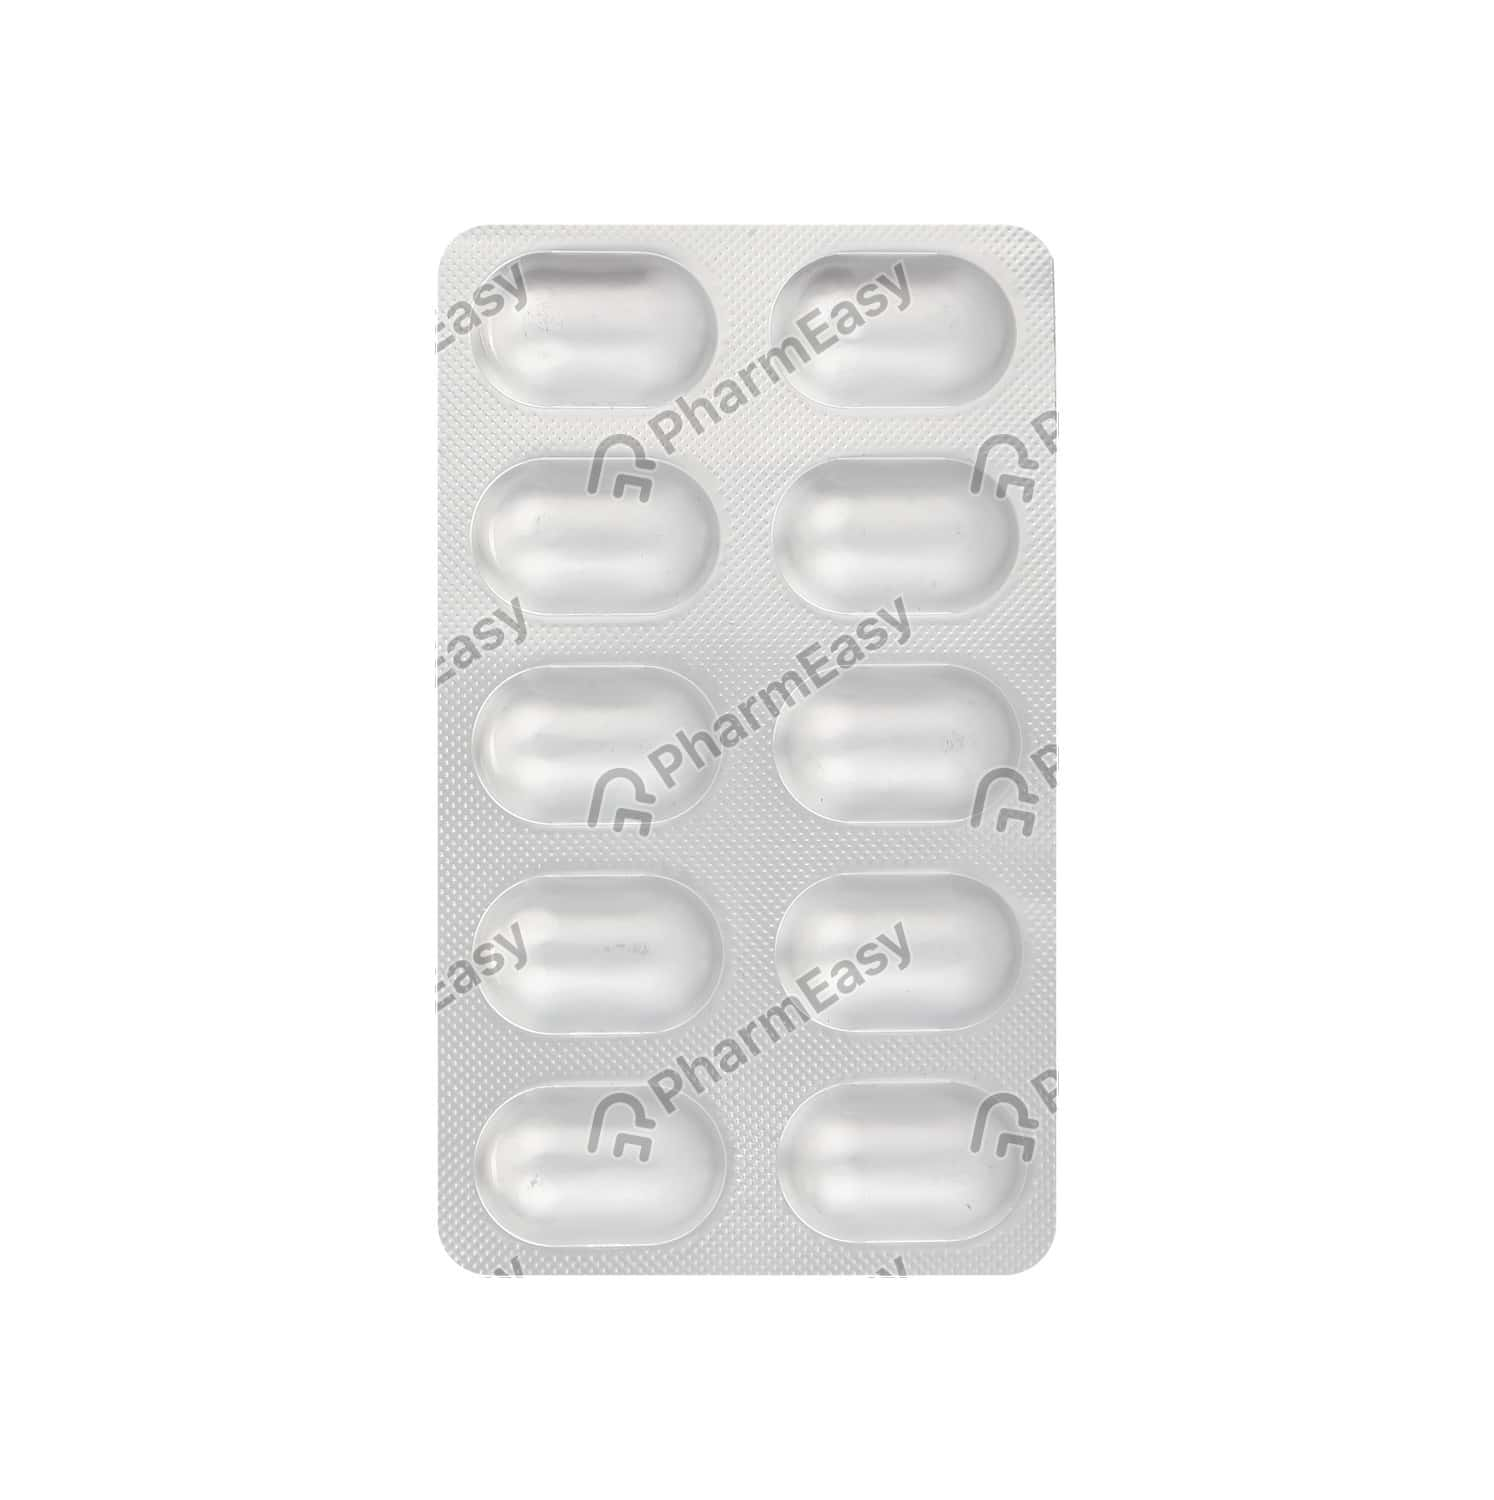 Modlip Asg 20mg Strip Of 10 Capsules